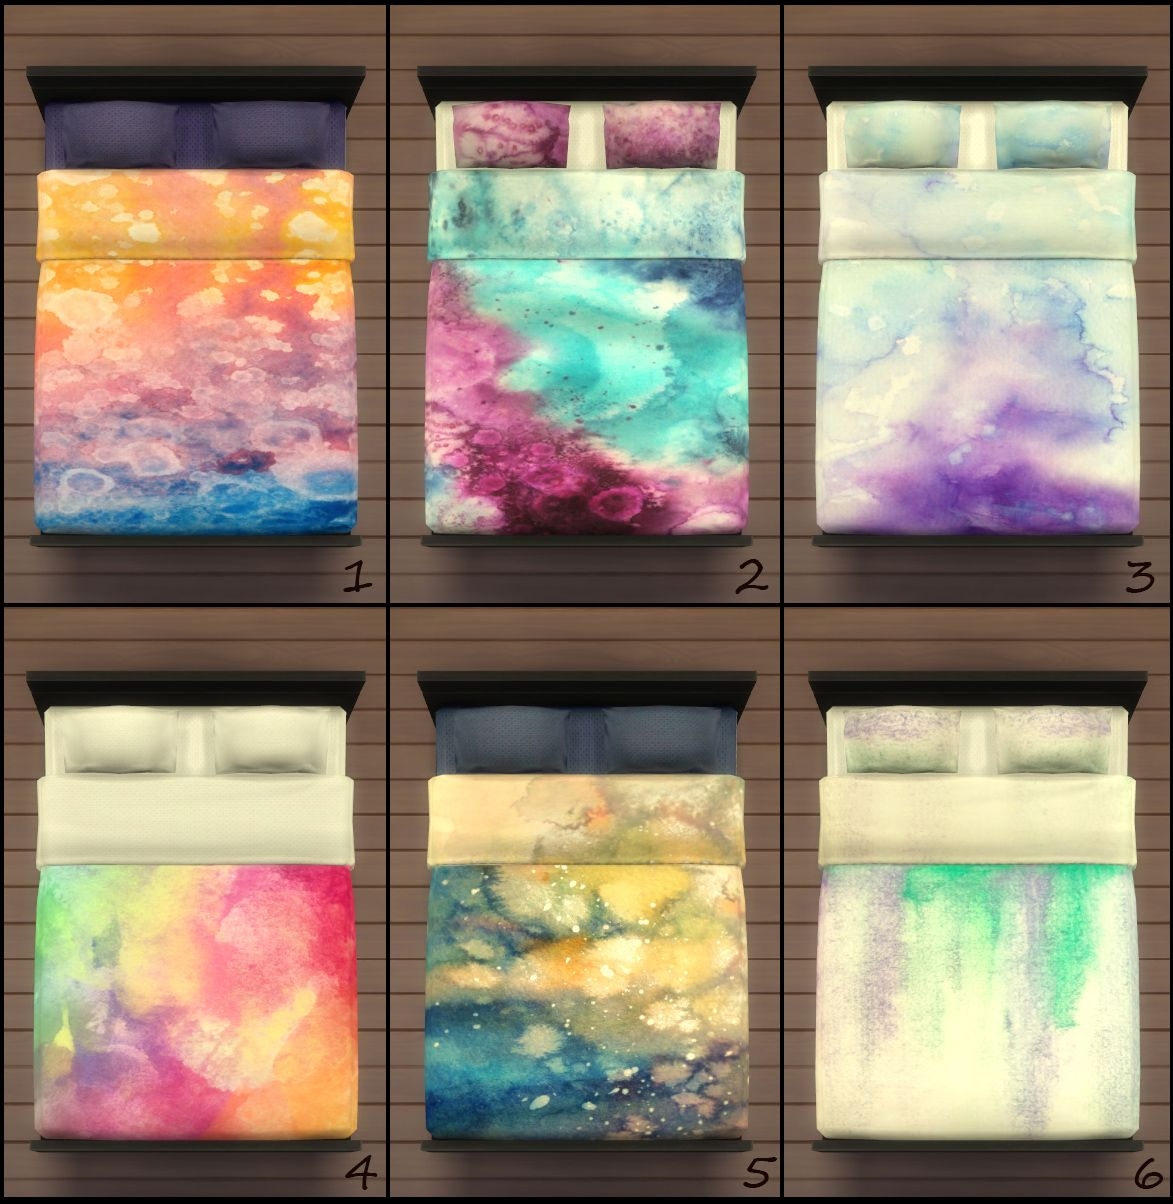 Sims 4 Custom Content Bed Google Search Sims 4 Watercolor